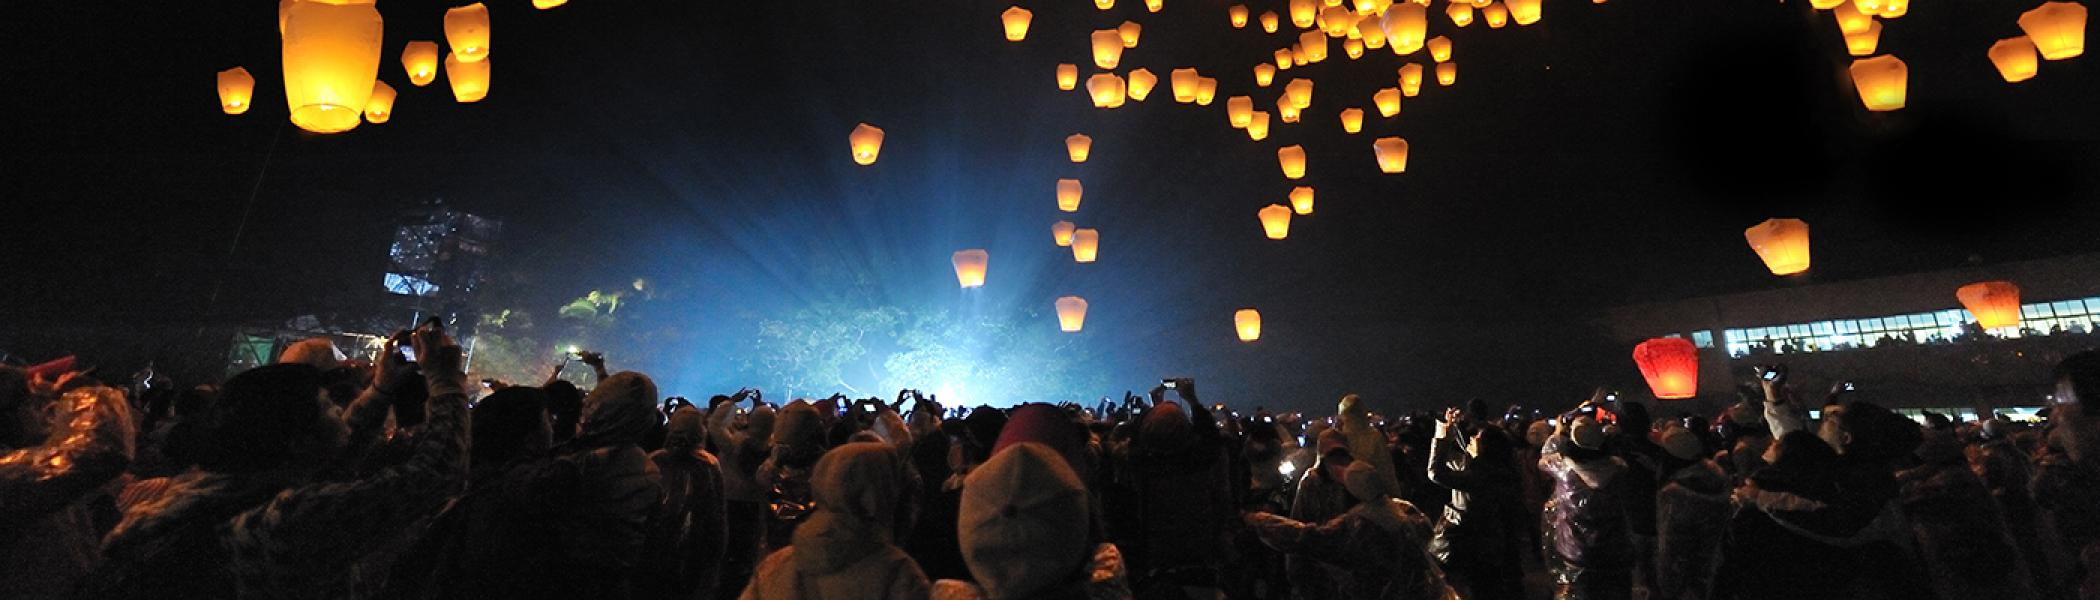 A crowd of people staring up a candles flating in the sky at night